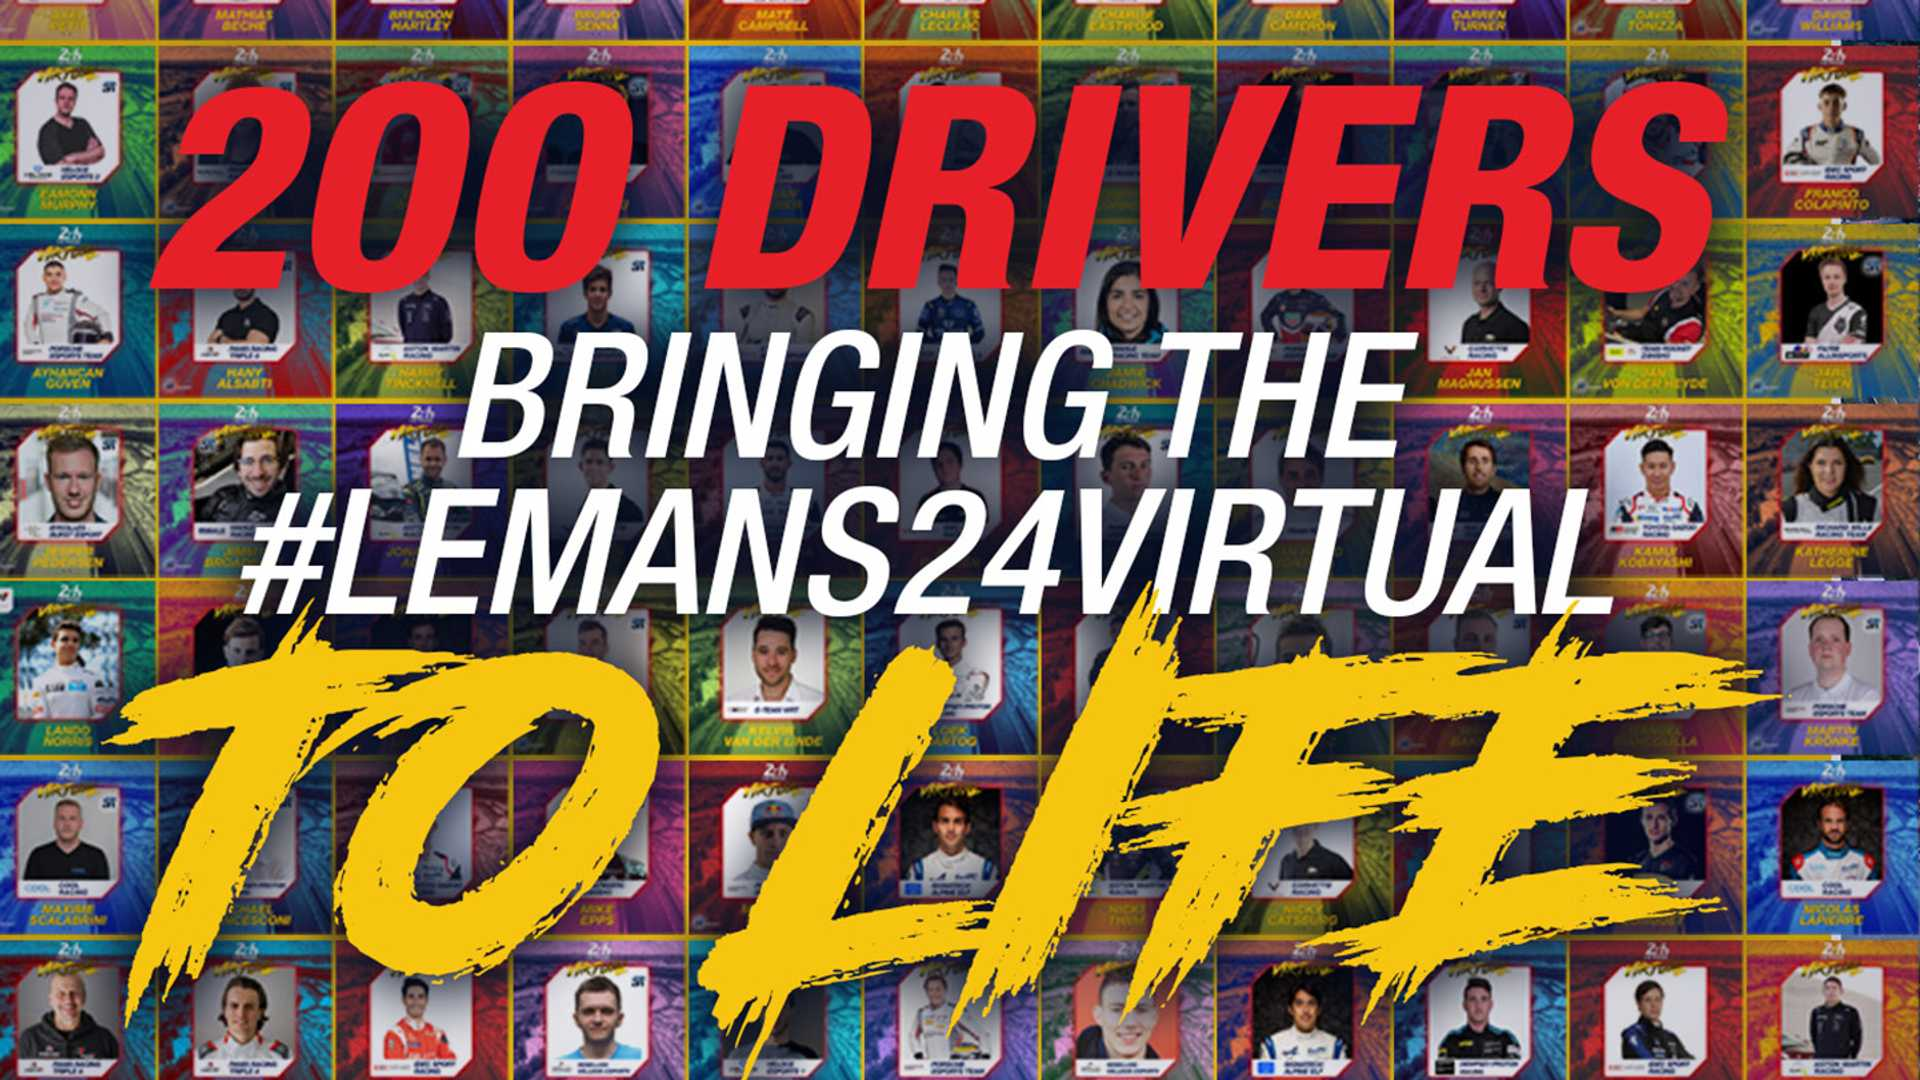 Le Mans 24 Virtual Entry List Announced And Stacked With Stars